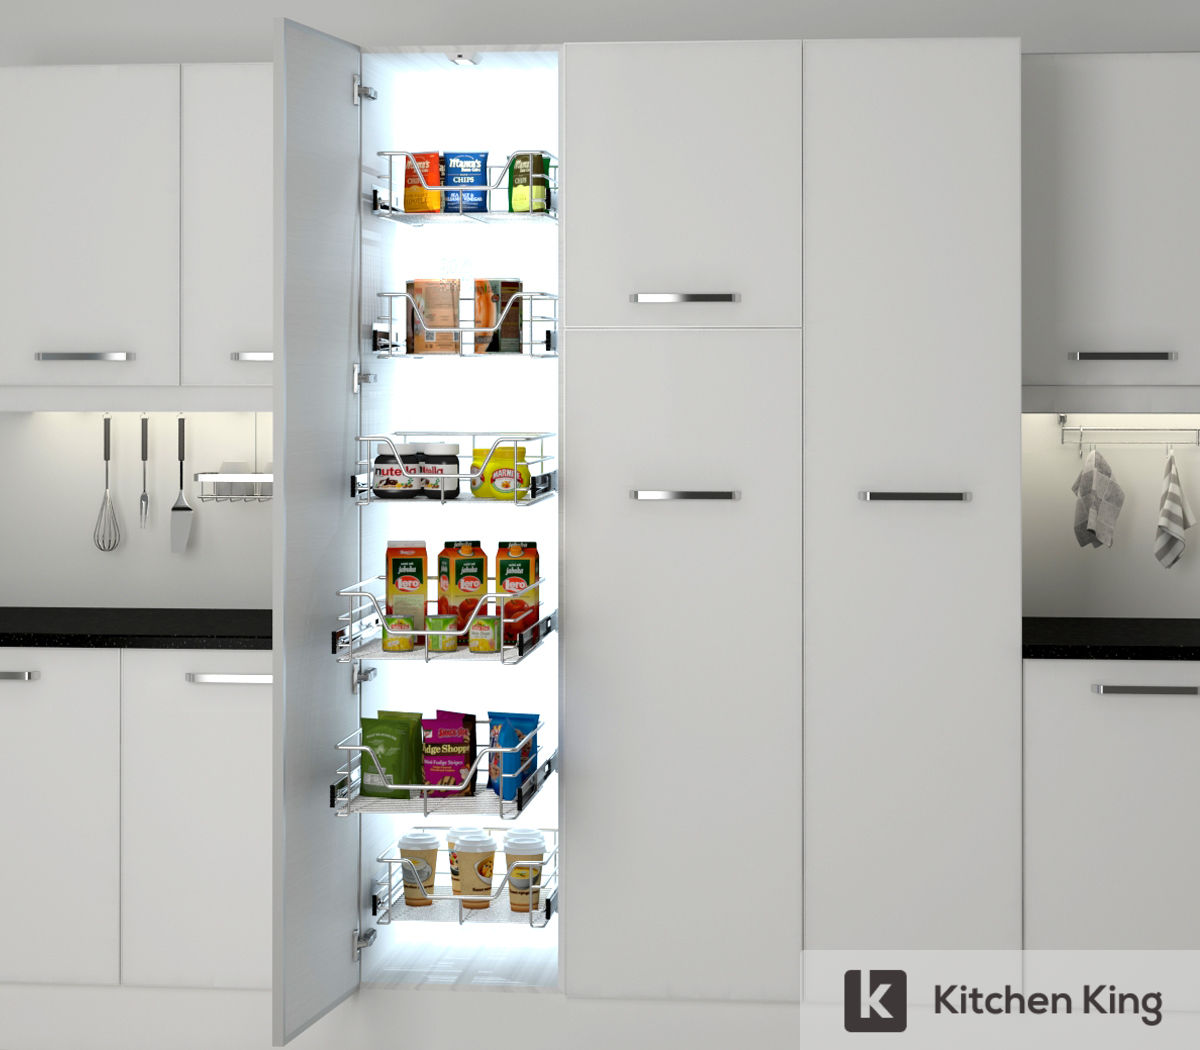 Www Kitchen Accessories: Kitchen Accessories, Kitchen Cabinet Pull Out In Dubai